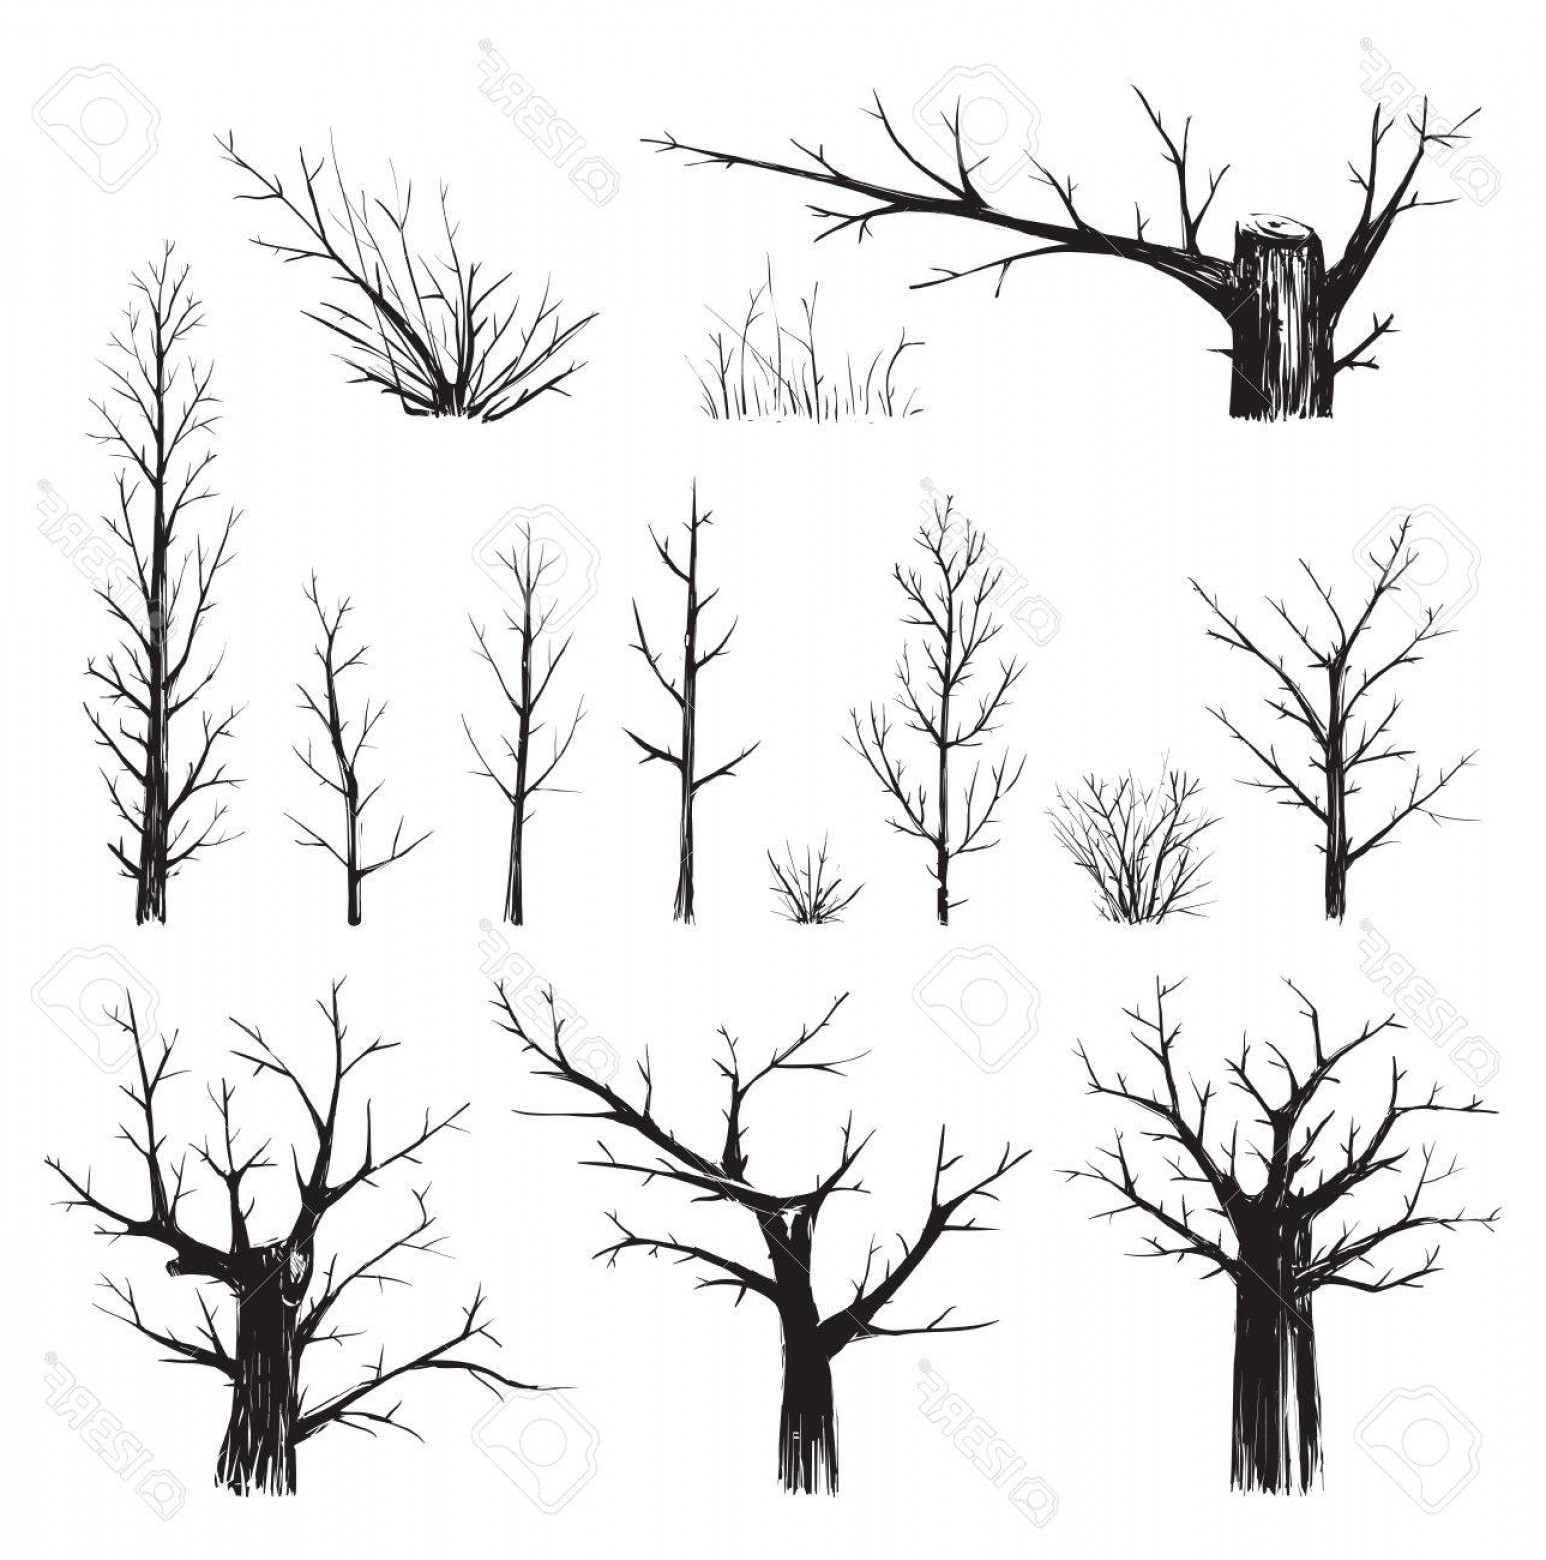 Scratch Y Drawing Vector: Photostock Vector Scratchy Trees Collection In Black Silhouettes Sketchy Set Of Freehand Trees Drawing Vector Eps Ill